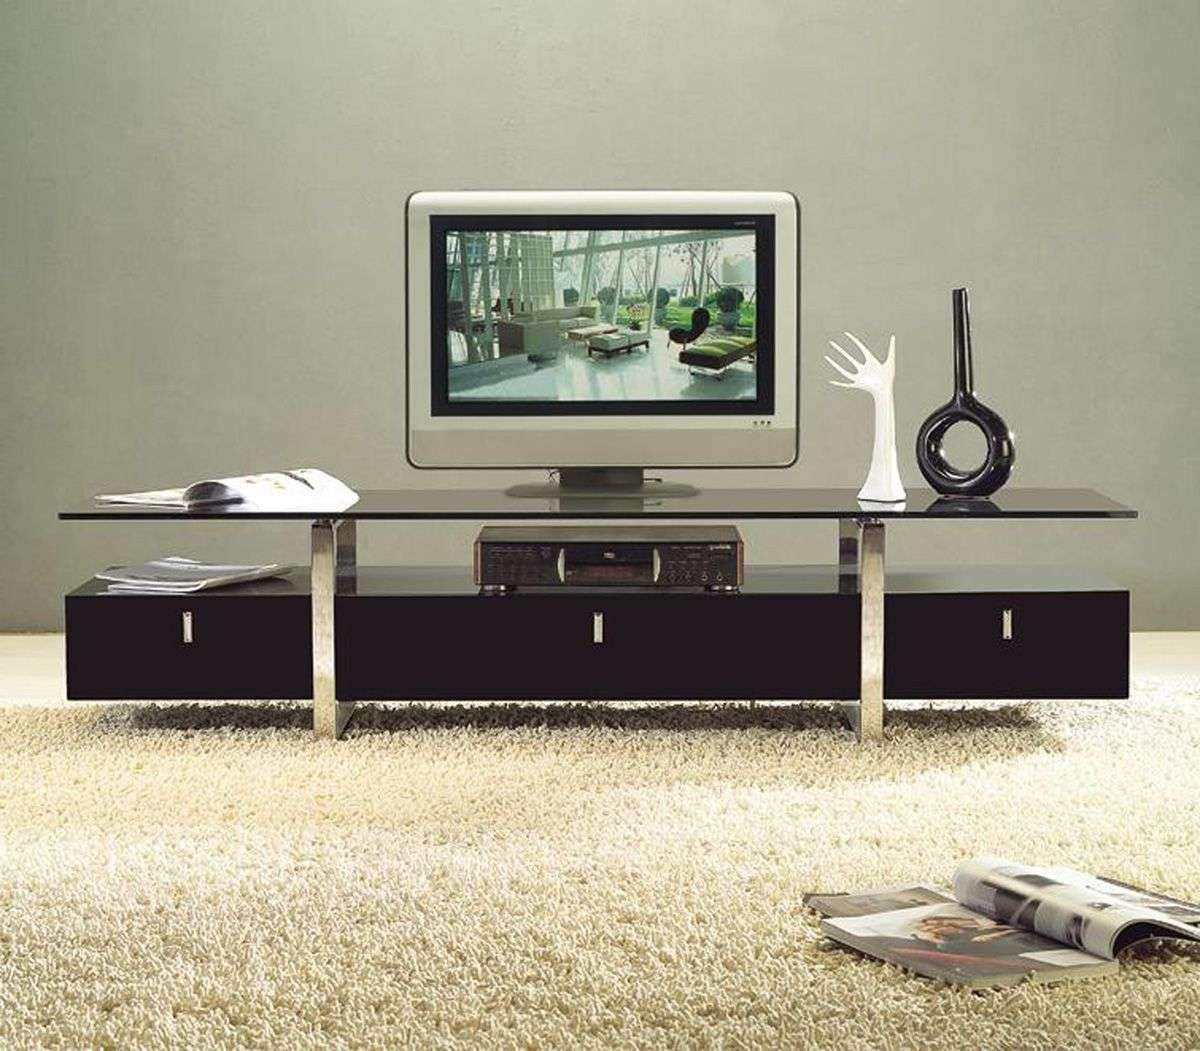 Cuisine: Modern Flat Screen Tv Stands Tv Stands For Plasma Tv Regarding Tv Stands For Plasma Tv (View 2 of 15)